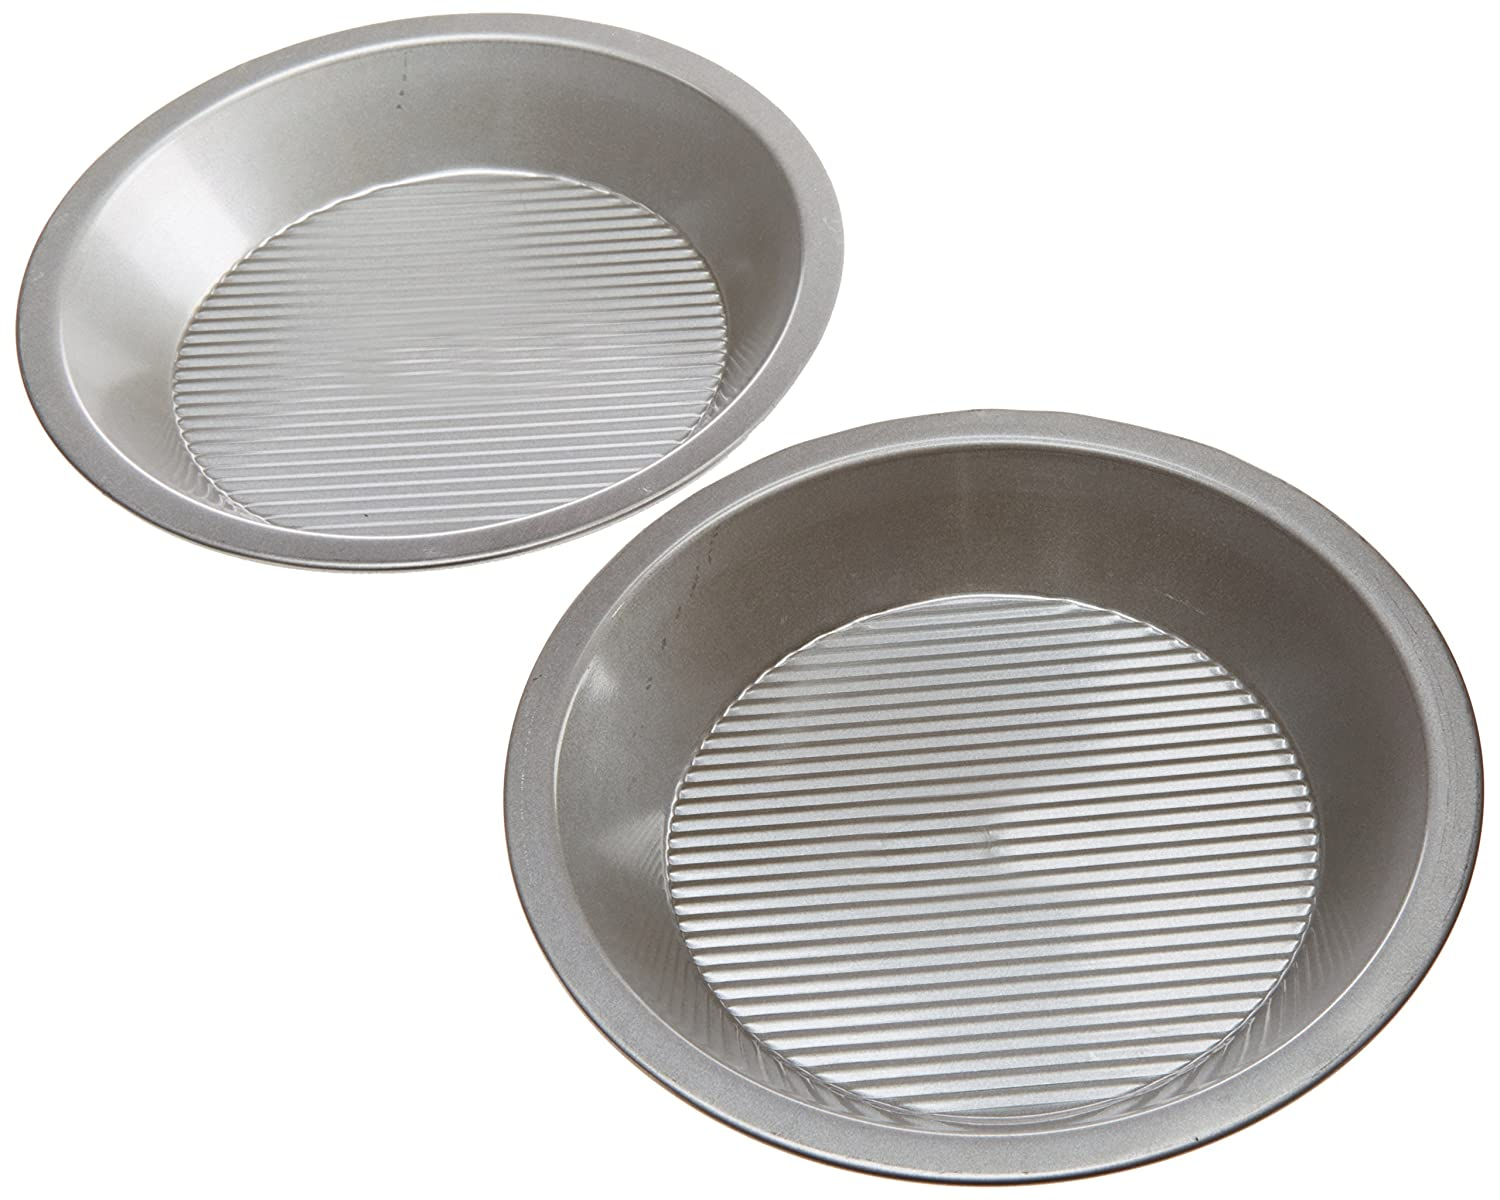 USA Pan Bakeware Aluminized Steel Pie Pan, 9-Inch 1100PE